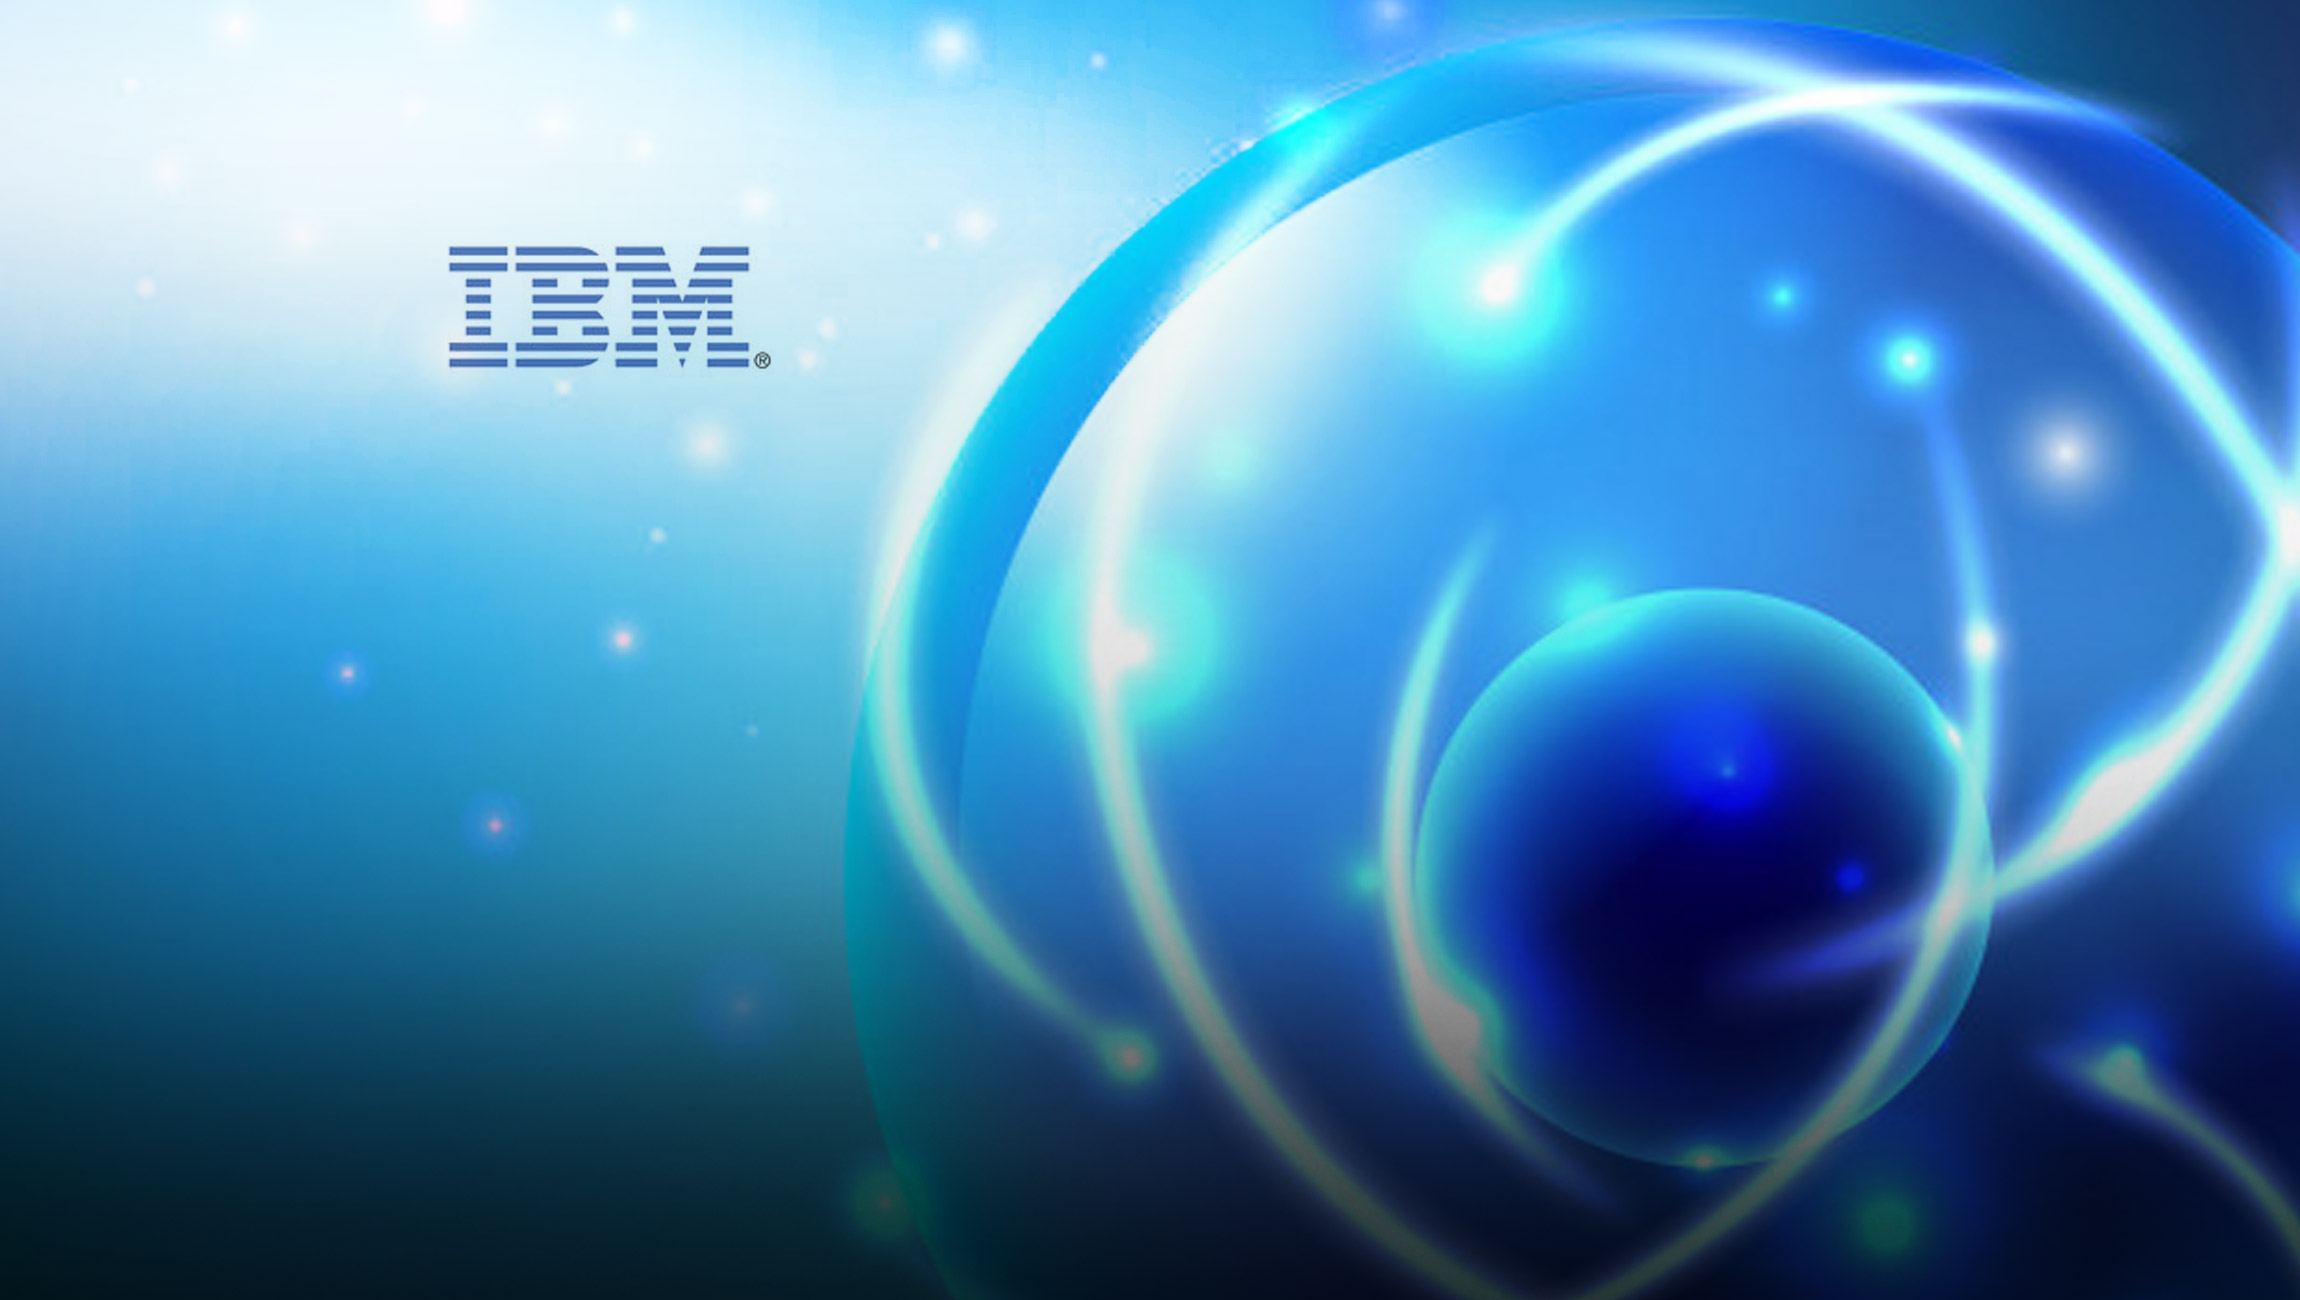 IBM CEO Arvind Krishna Keynotes IBM Think Digital 2020; Announces New AI, Edge and Cloud Capabilities to Help Clients Accelerate Recovery and Transformation